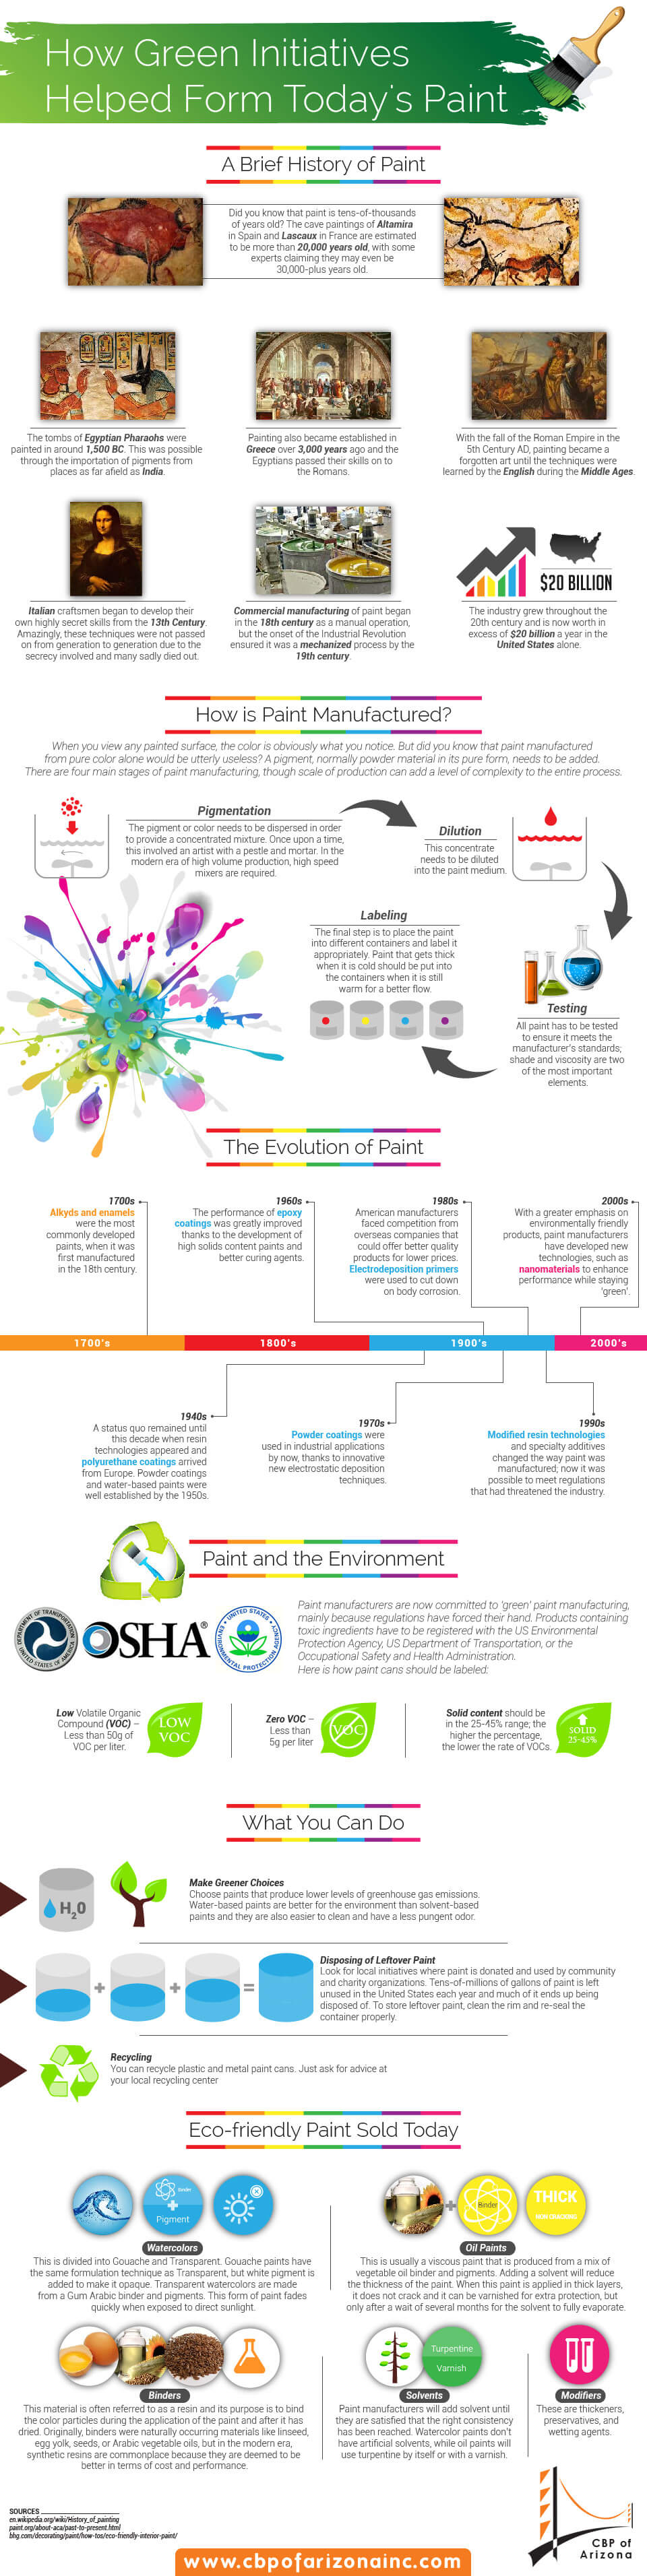 how-green-initiatives-helped-form-todays-paint-infographic